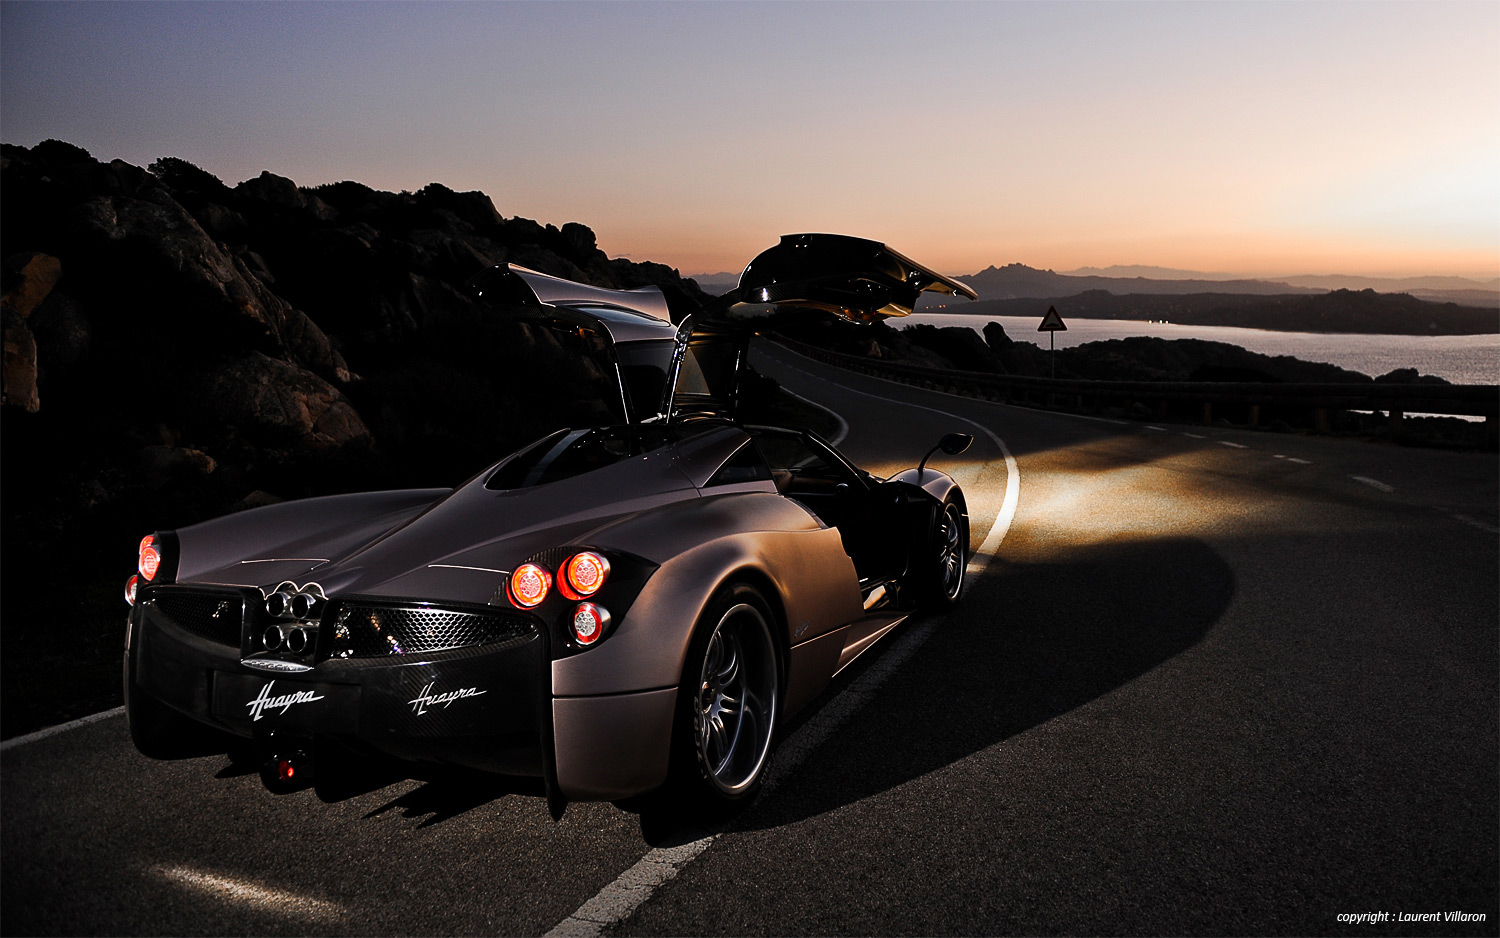 50 Super Sports Car Wallpapers Thatll Blow Your Desktop Away 1500x938